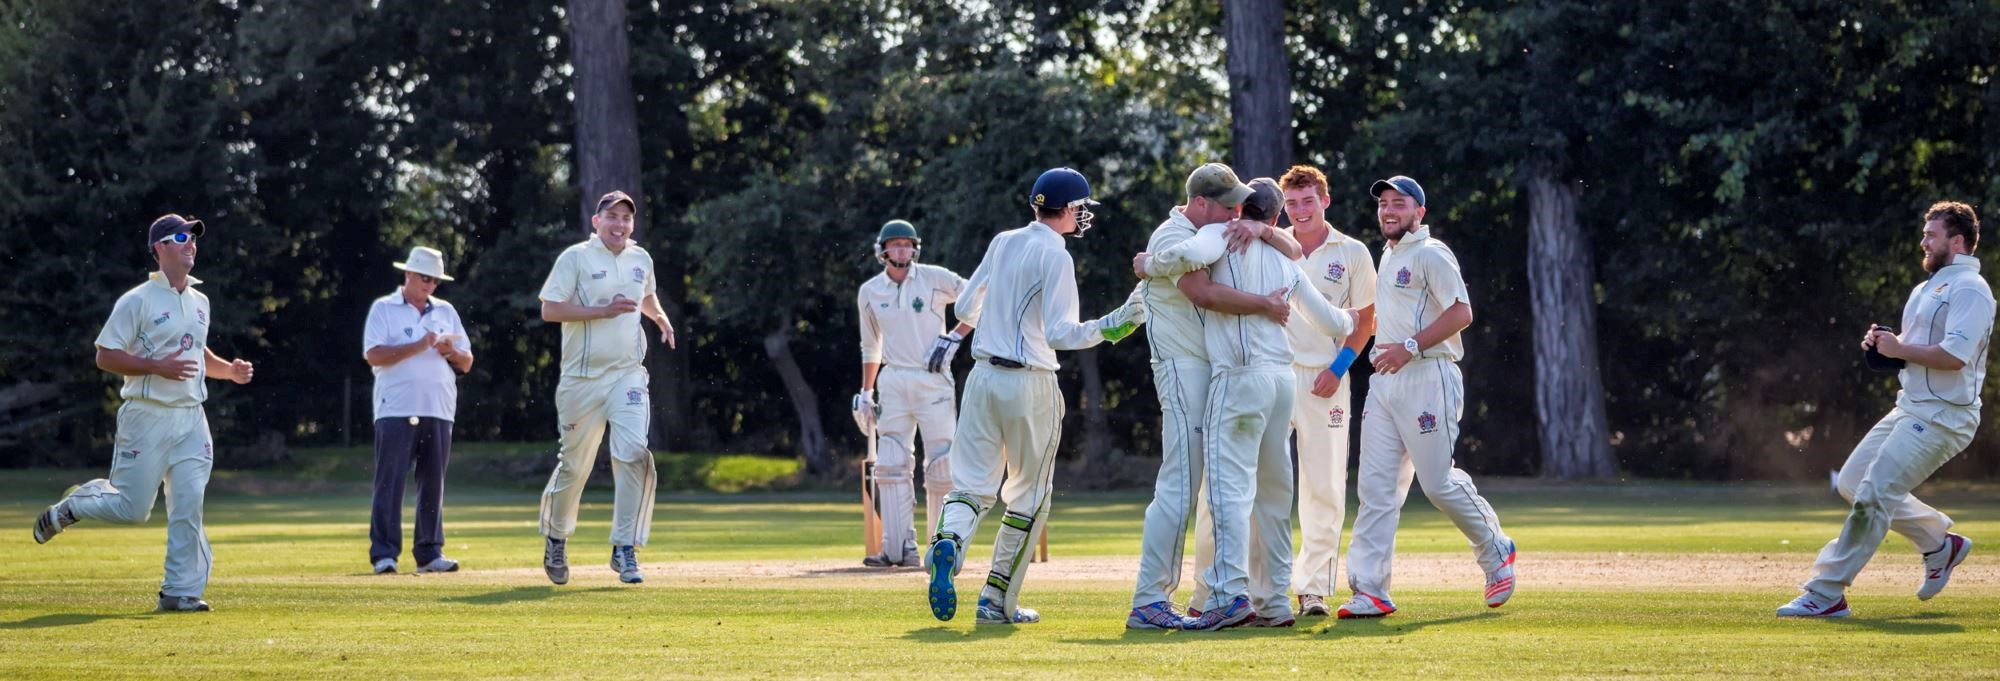 Recreational cricketers celebrating success